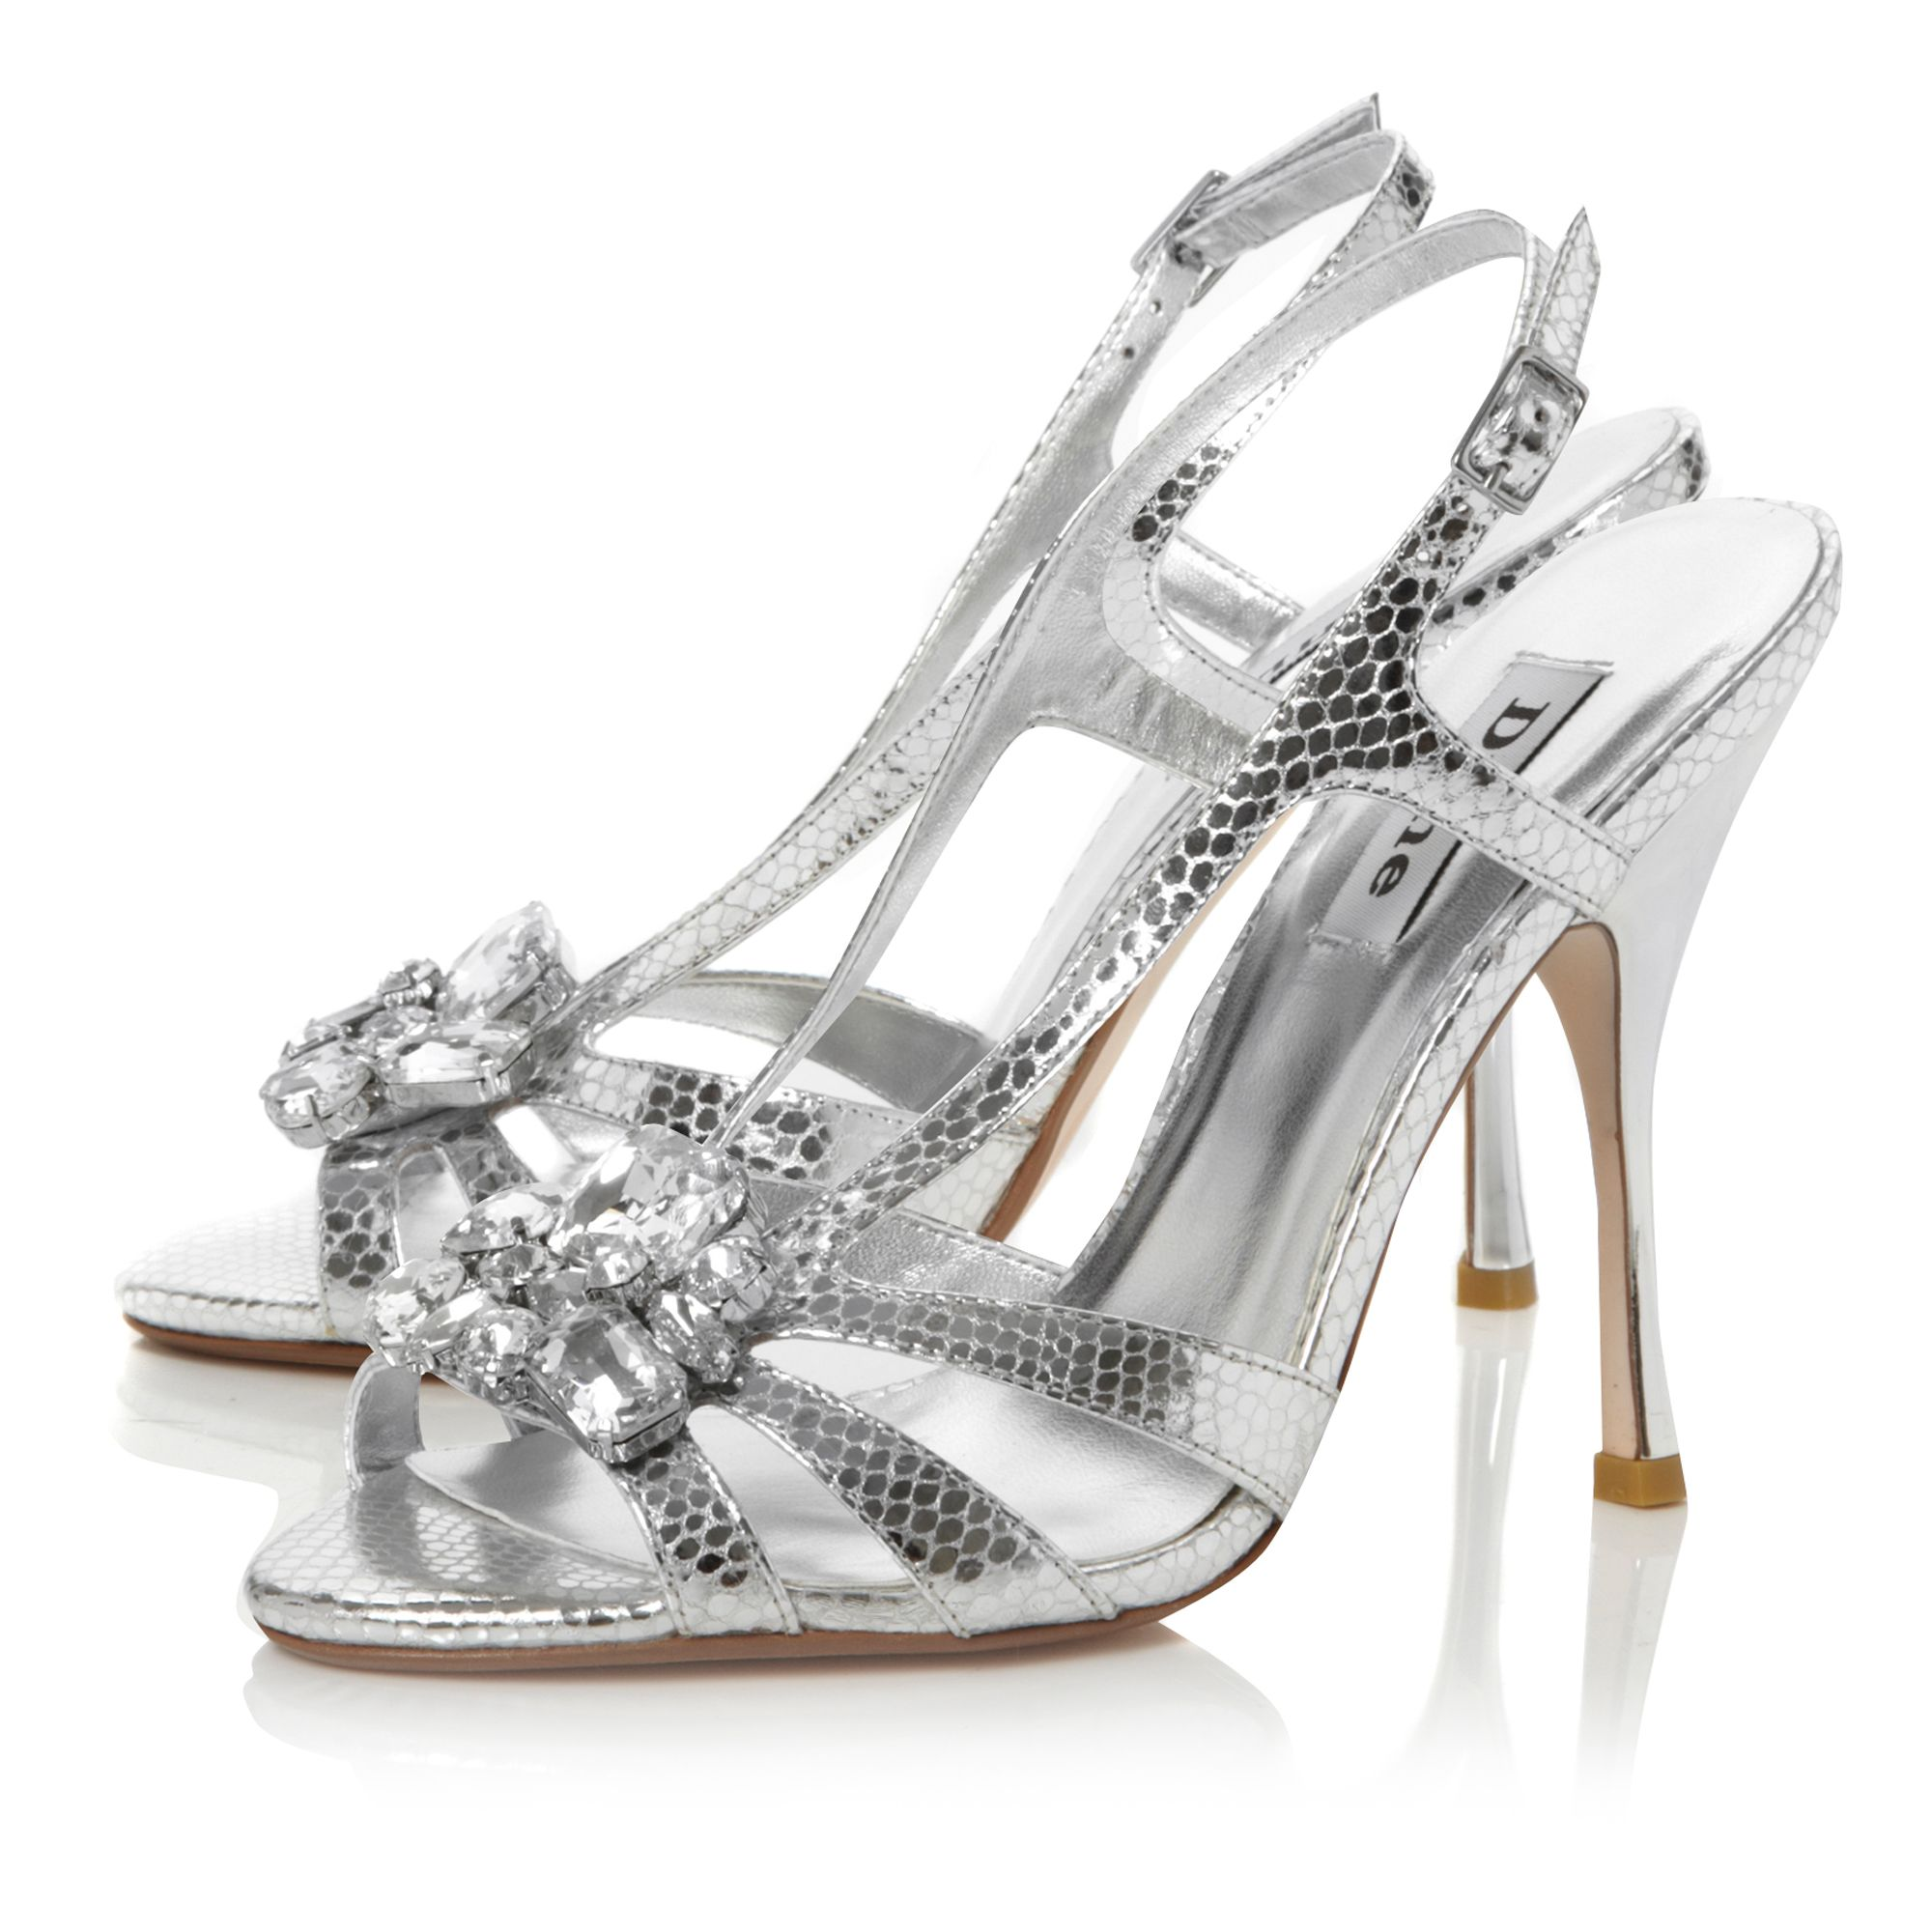 Habitat Larged Caged Jewel Sandals